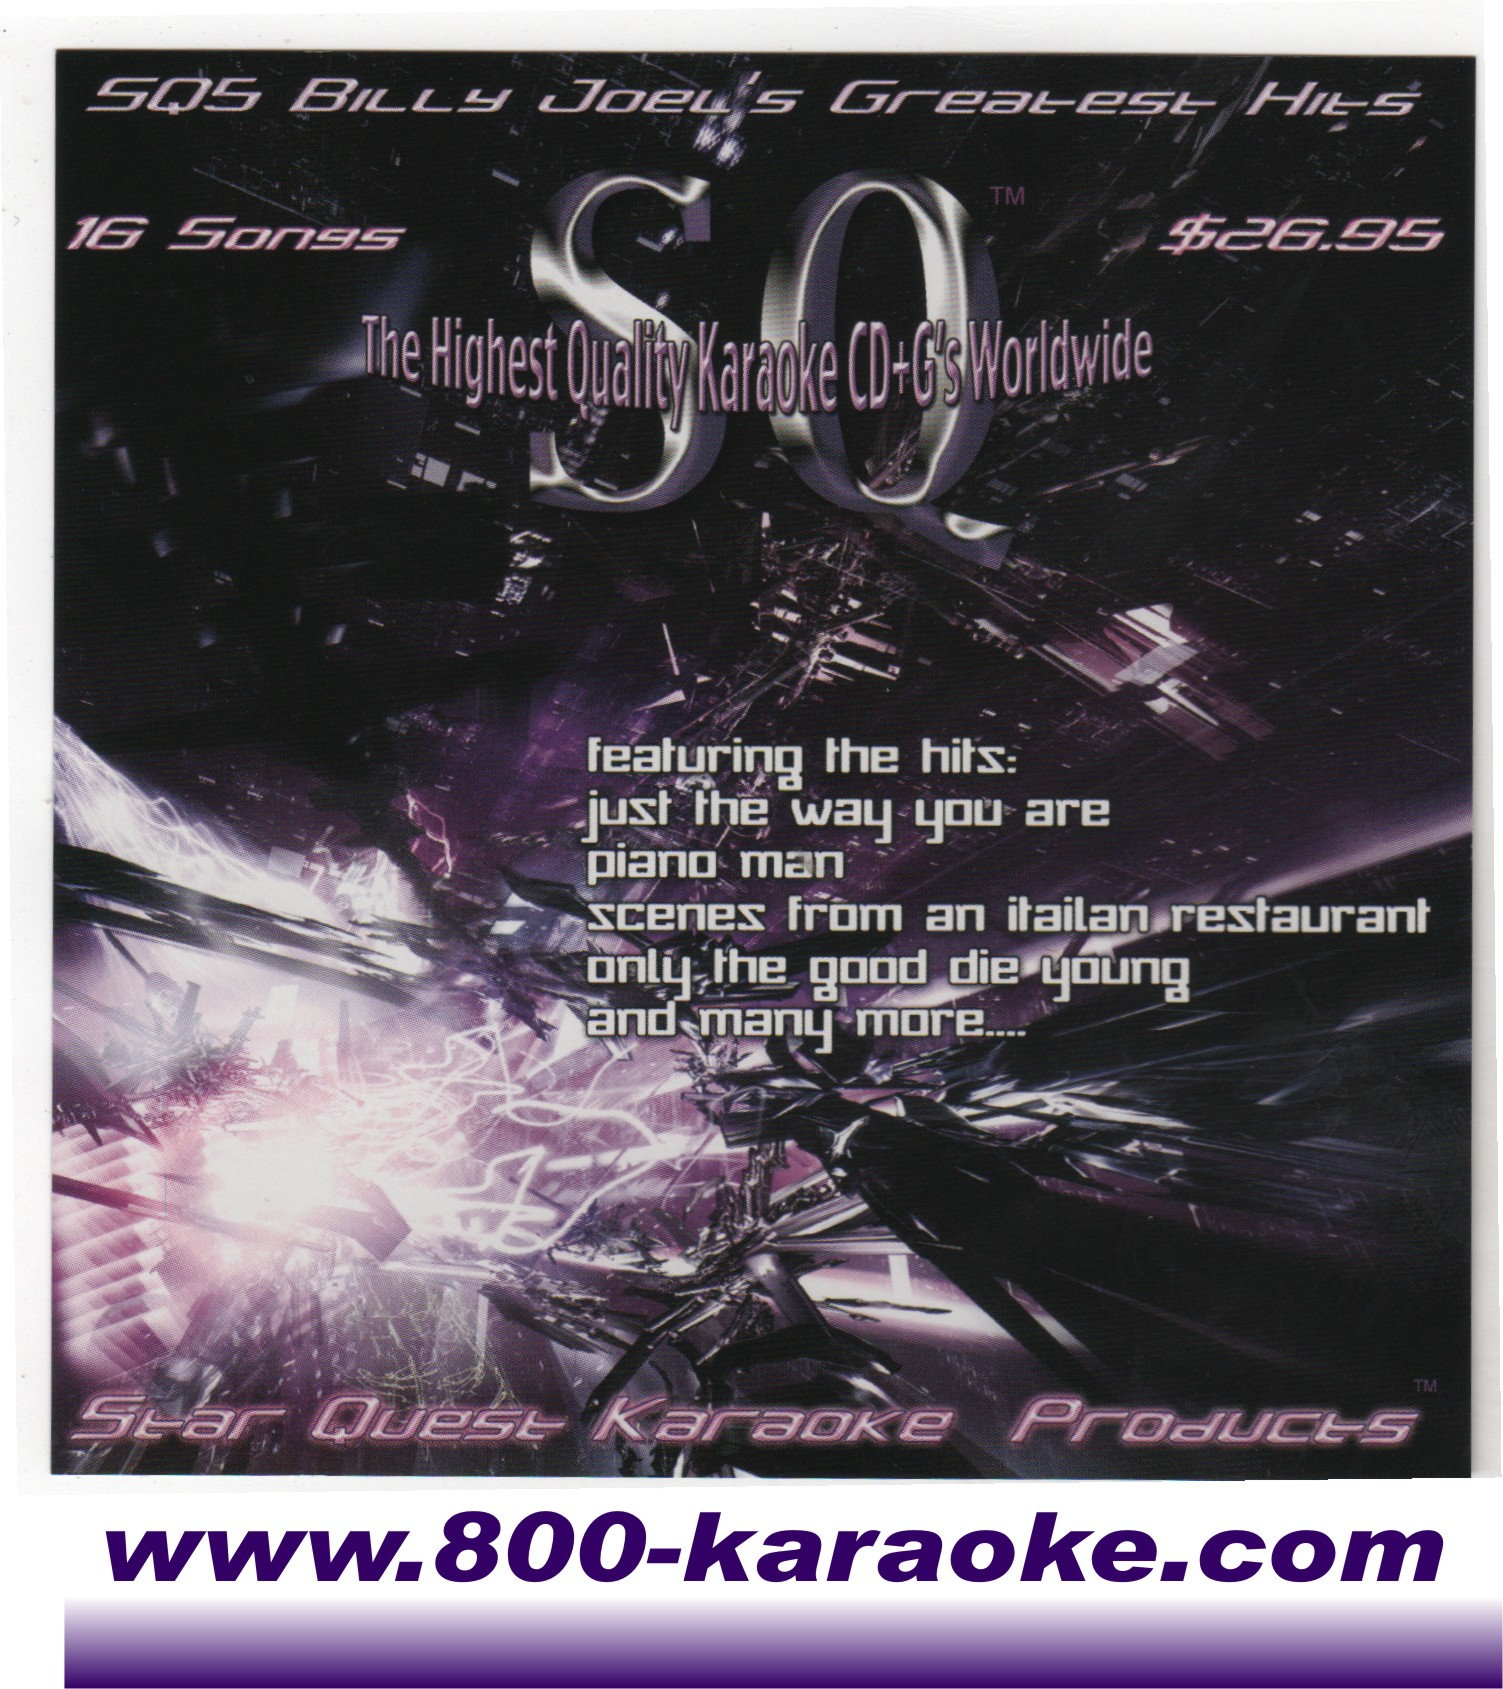 star quest billy joel karaoke #005